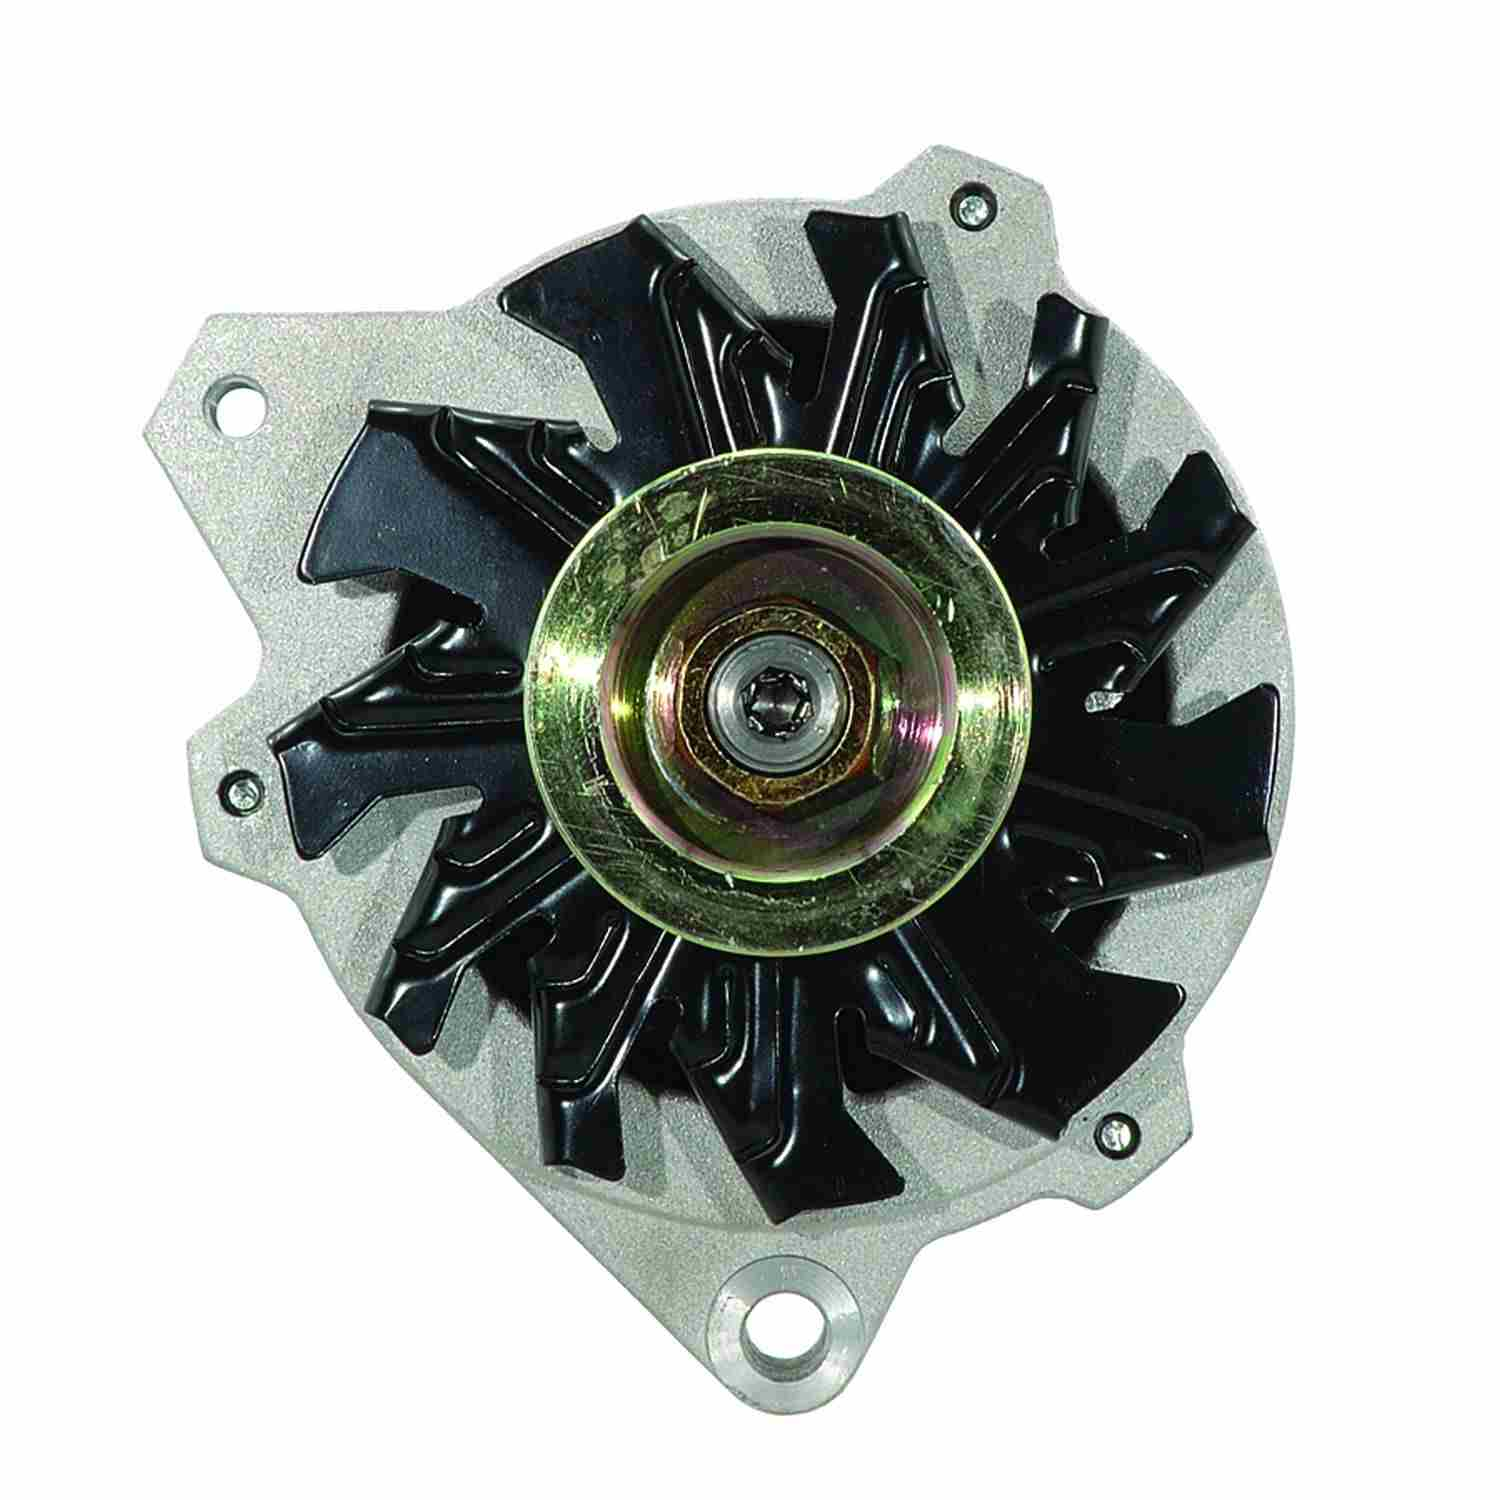 ACDELCO GOLD/PROFESSIONAL - Alternator - DCC 335-1221